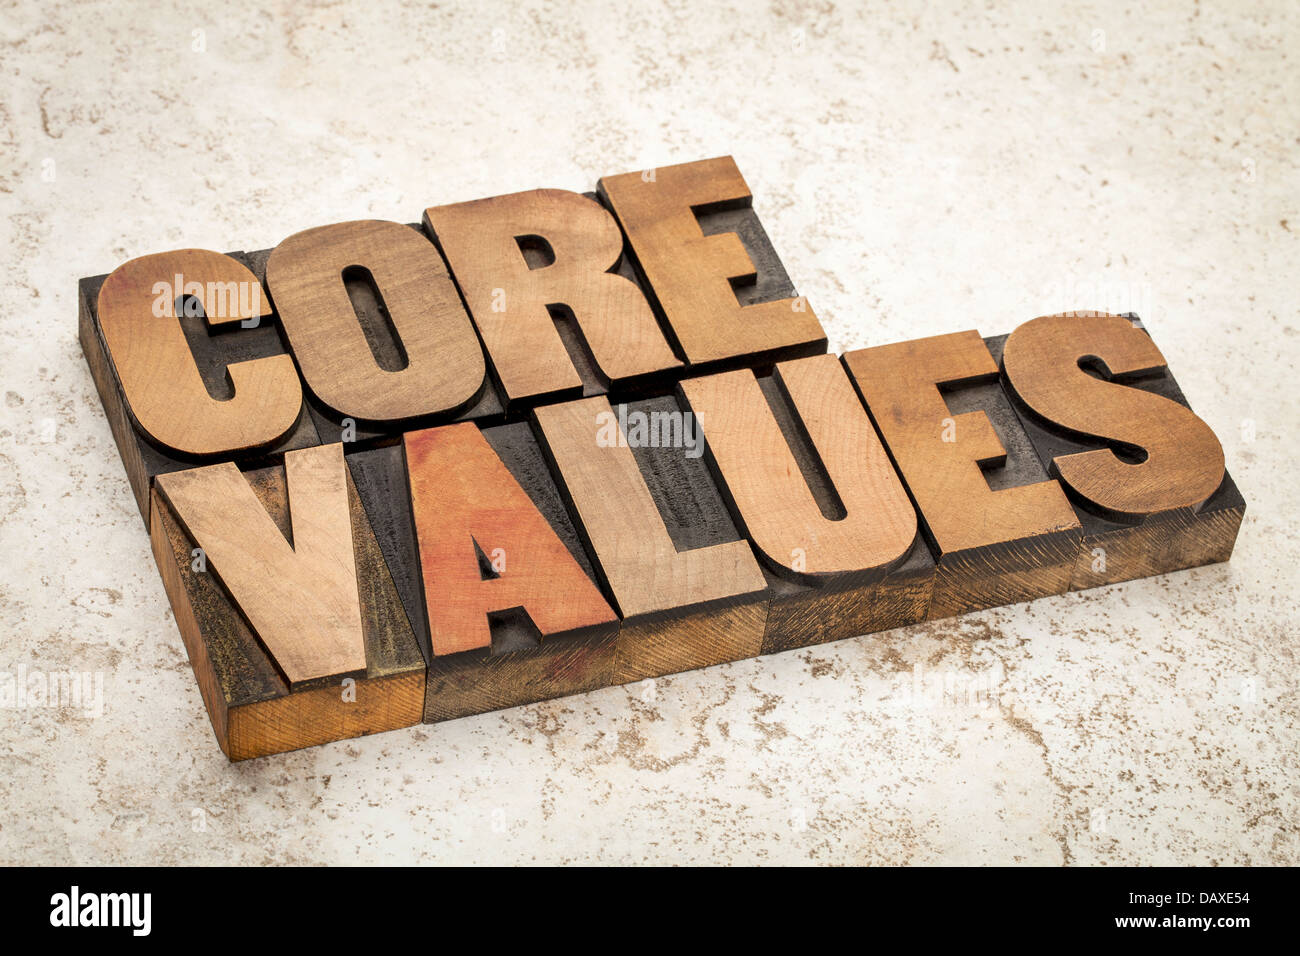 core values - ethics concept - text in vintage letterpress wood type on a ceramic tile background - Stock Image